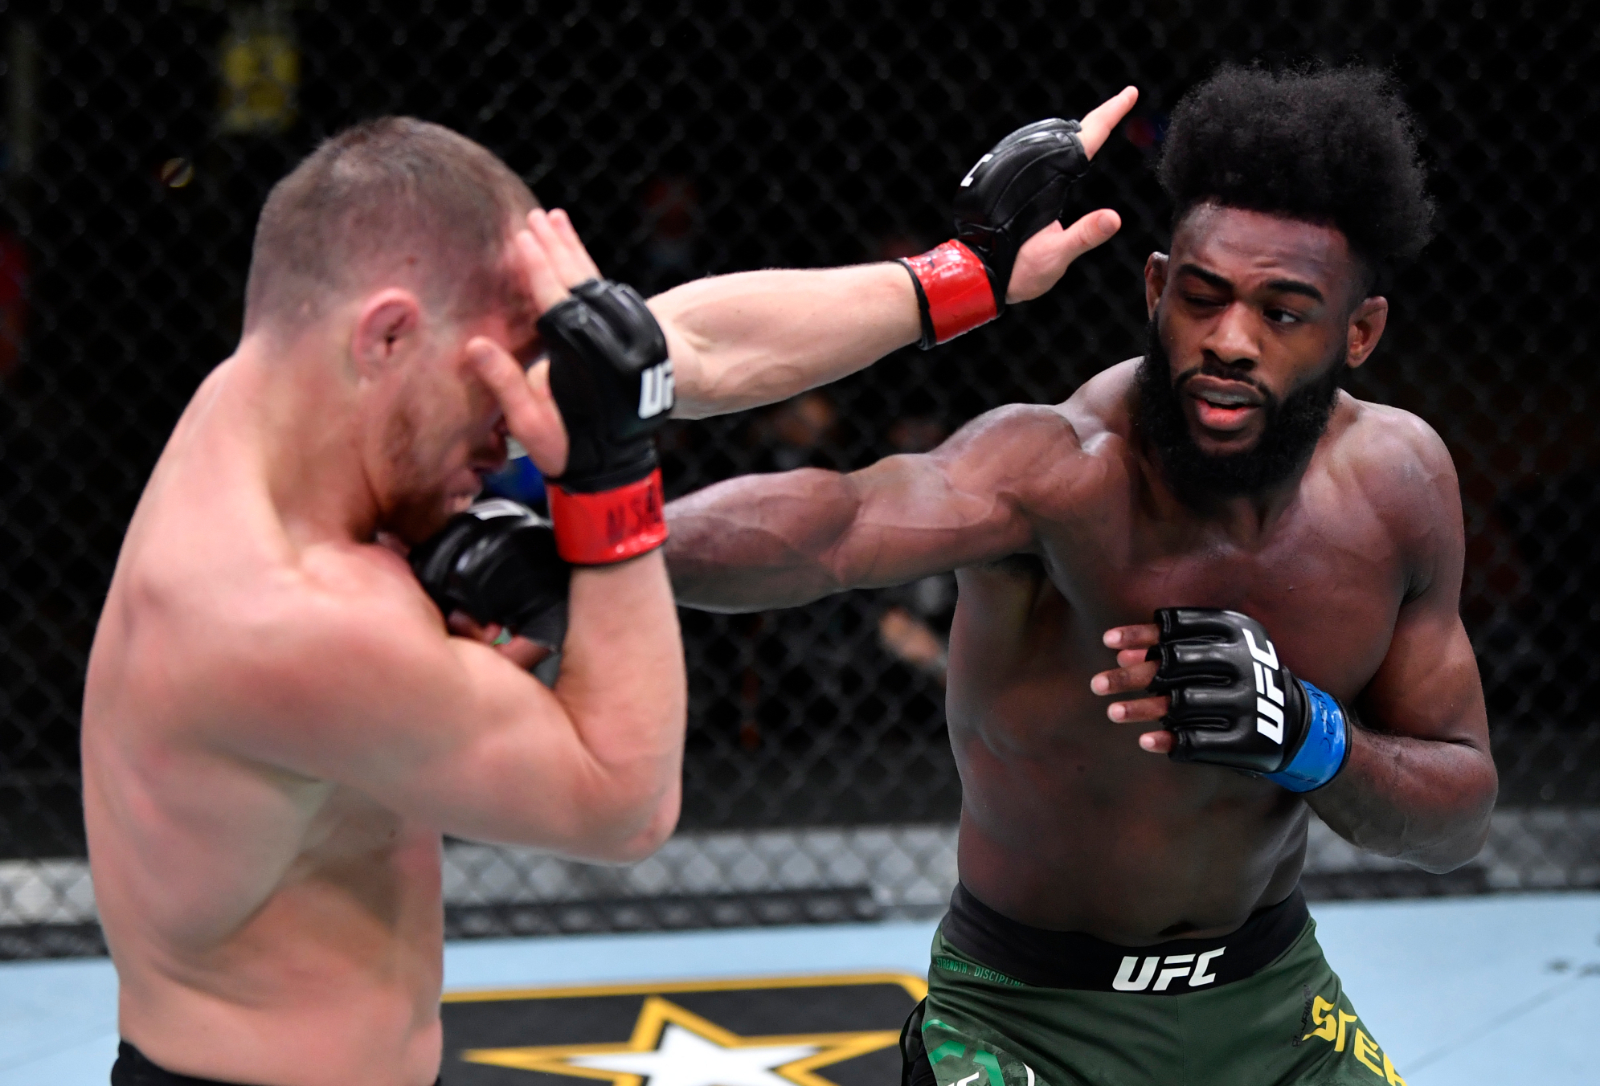 'I didn't enact the rest illegal': Aljamain Sterling hits out at fans questioning his DQ fetch against Petr Yan